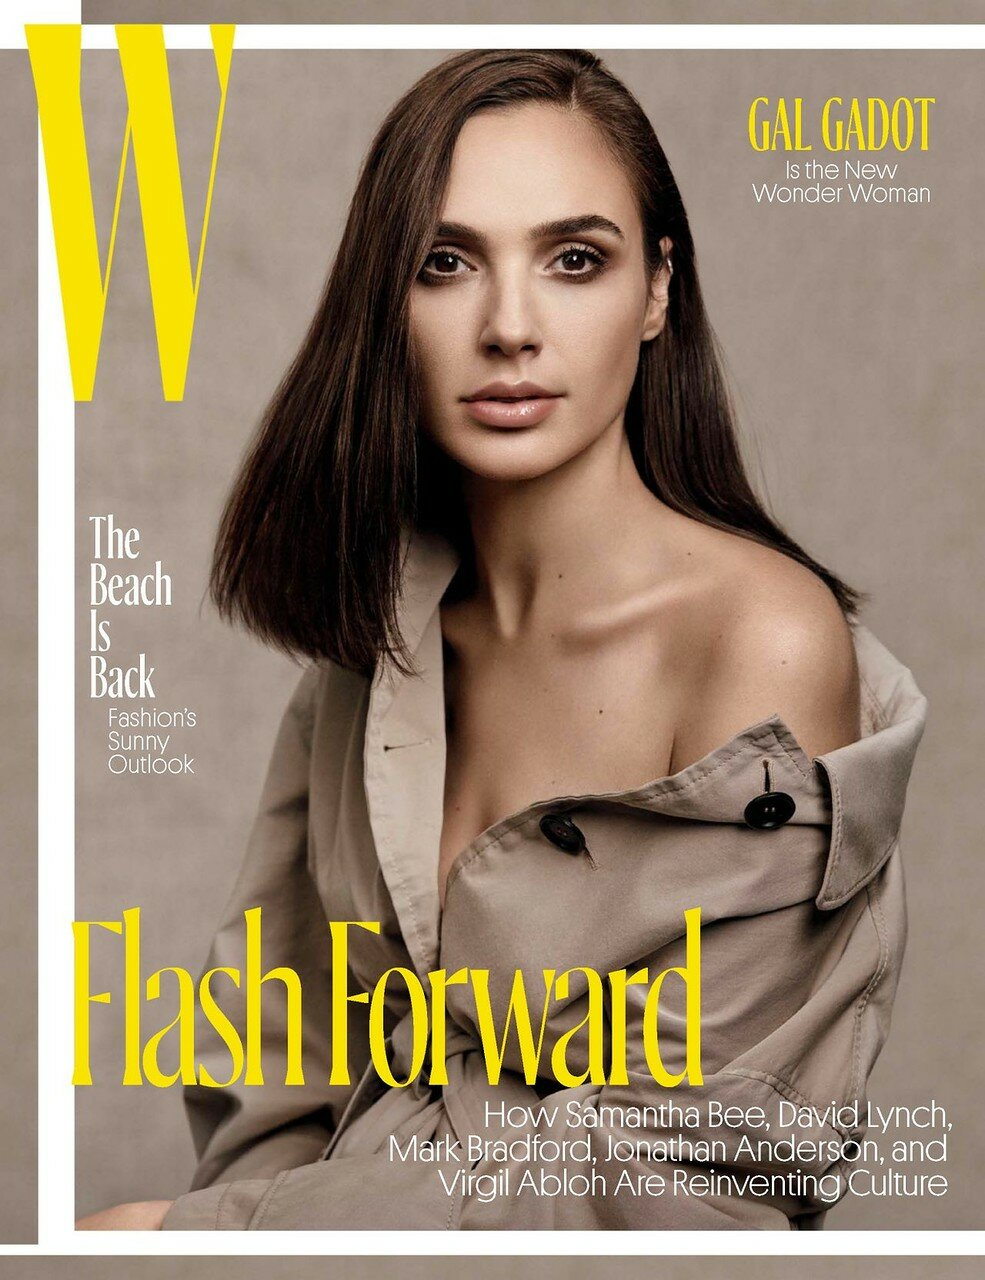 gal-gadot-w-magazine-may-2017-issue-10.jpg